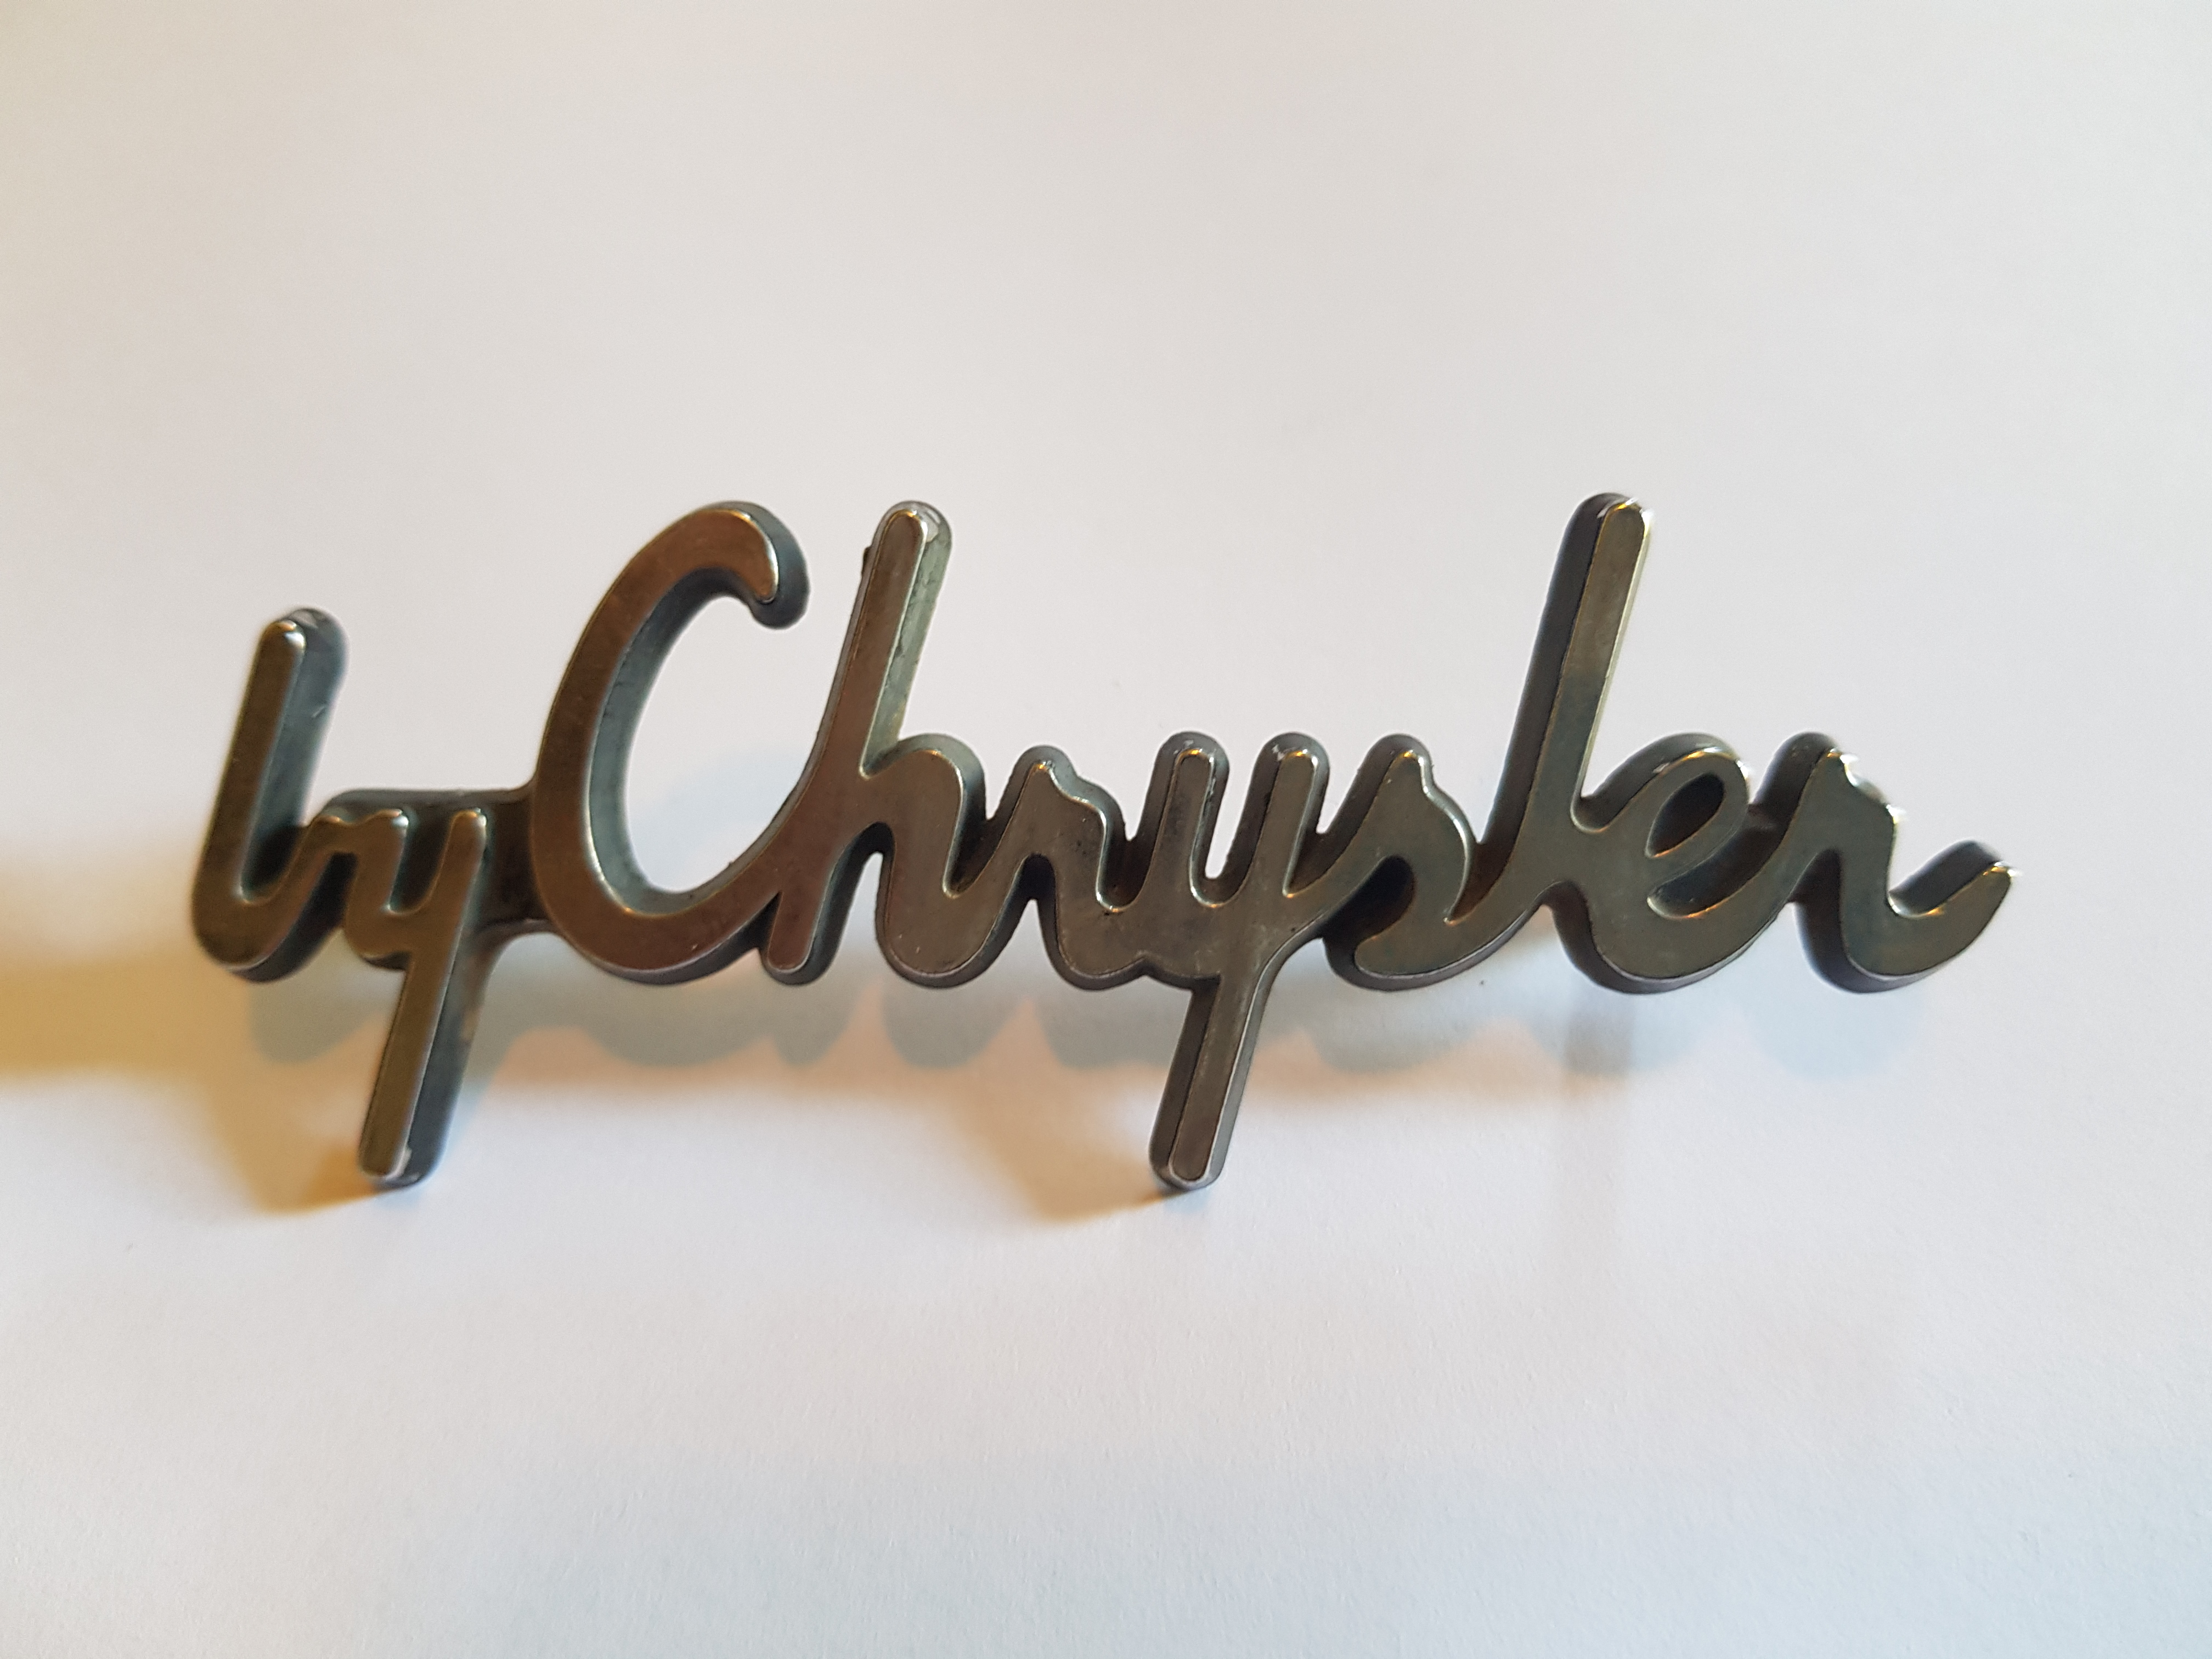 'by Chrysler' Script Badge, salvaged